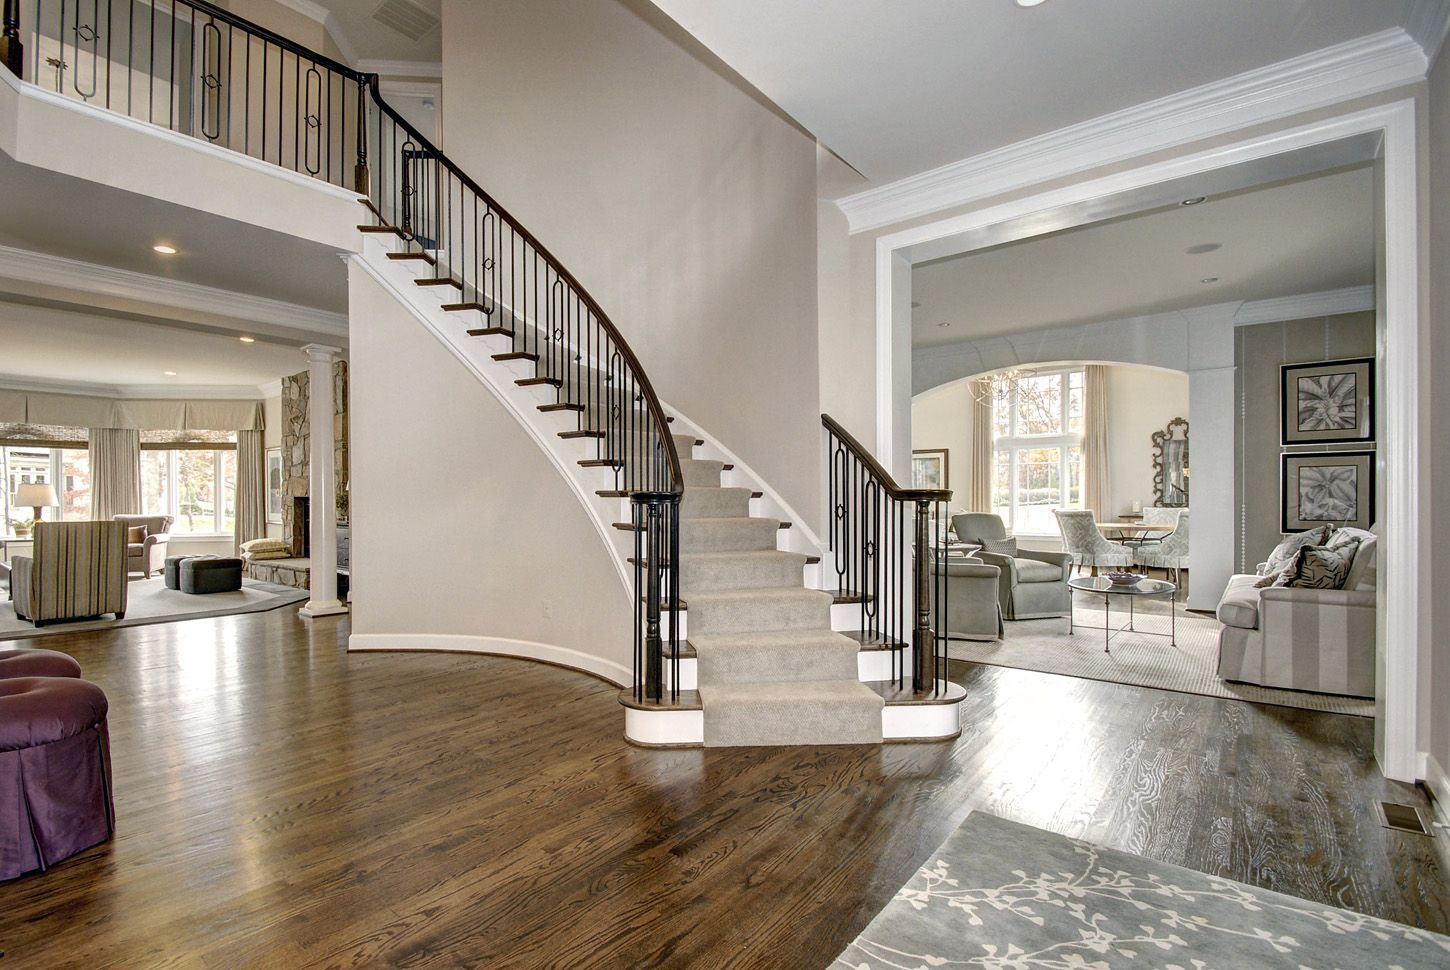 Home Group Foyer : Foyer with curved staircase and views into the home